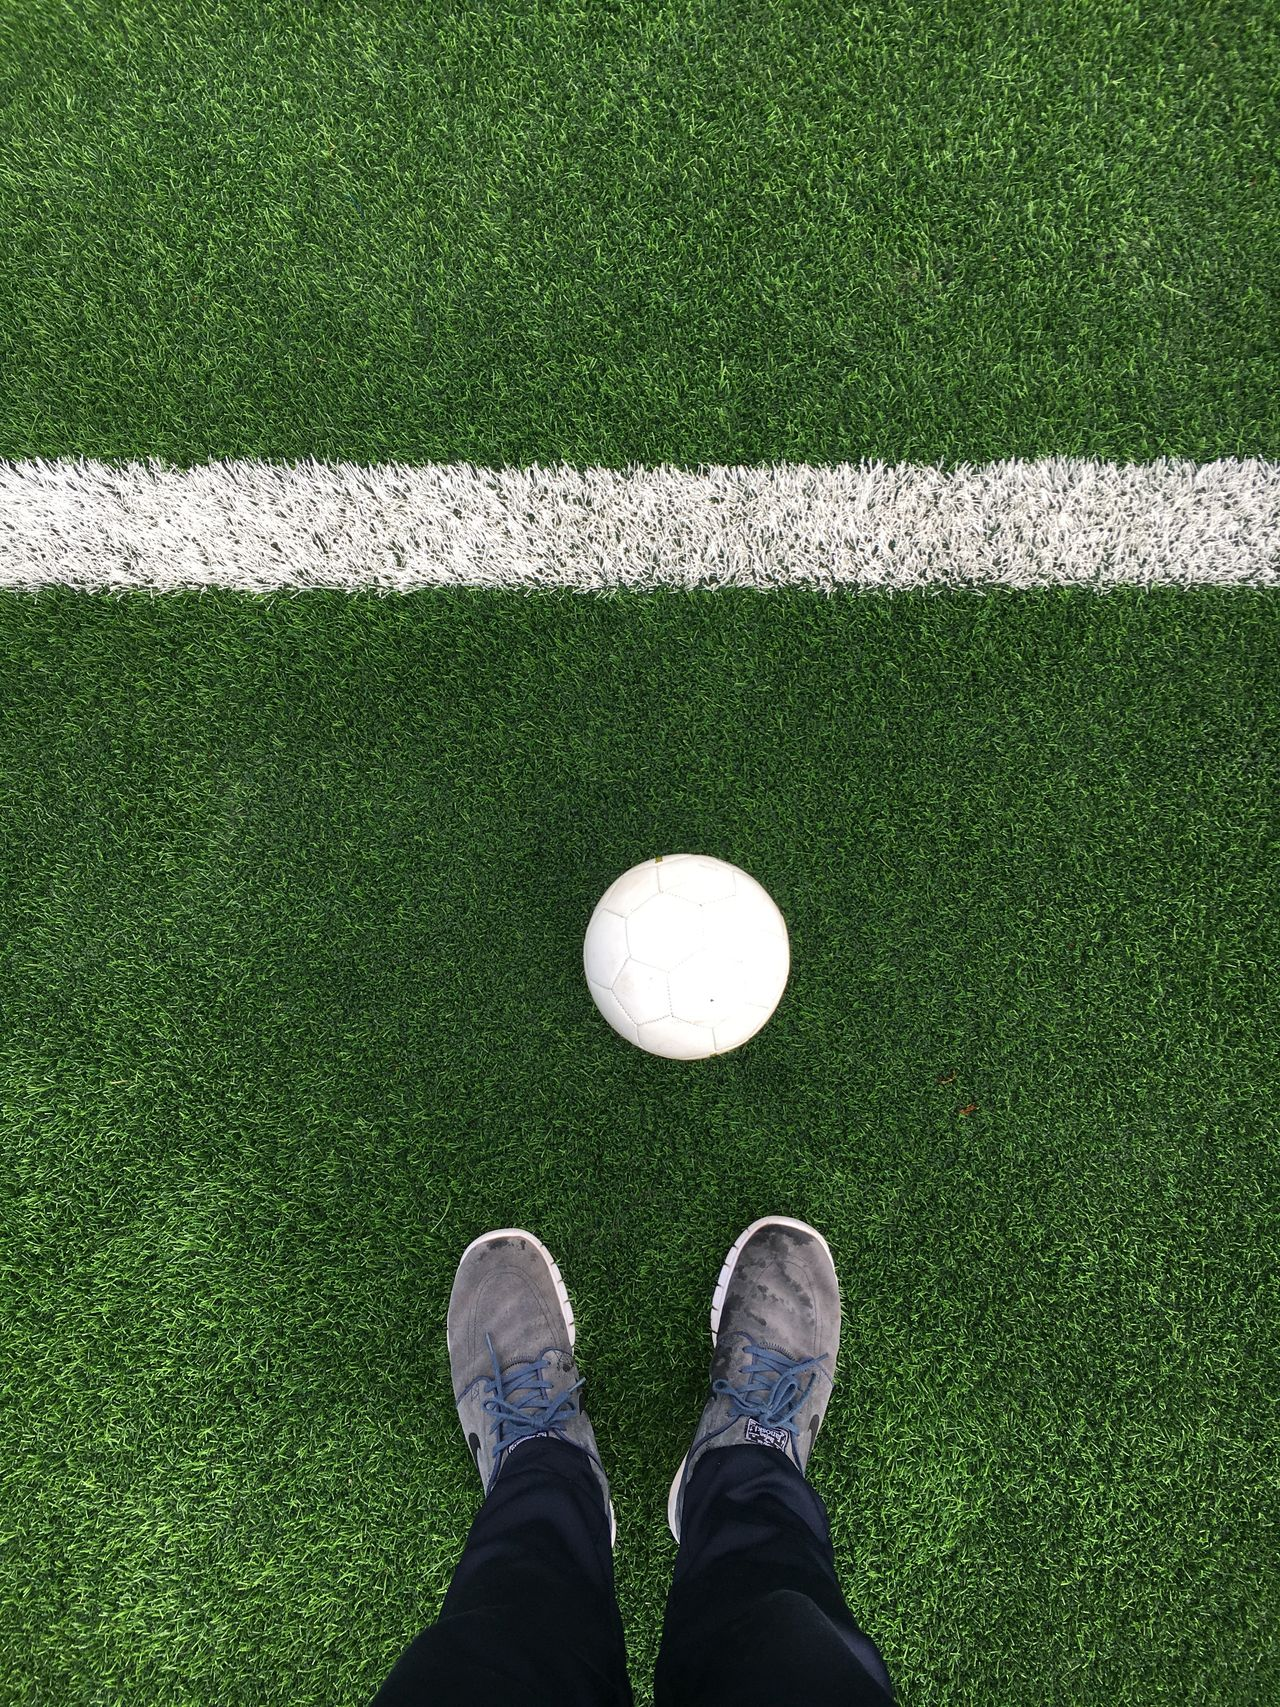 One Person Sport Human Body Part Grass Leisure Activity One Man Only Personal Perspective Standing Human Leg Low Section Green Color High Angle View Directly Above Golf Real People Men Day Outdoors People Adult Soccer Soccer Field